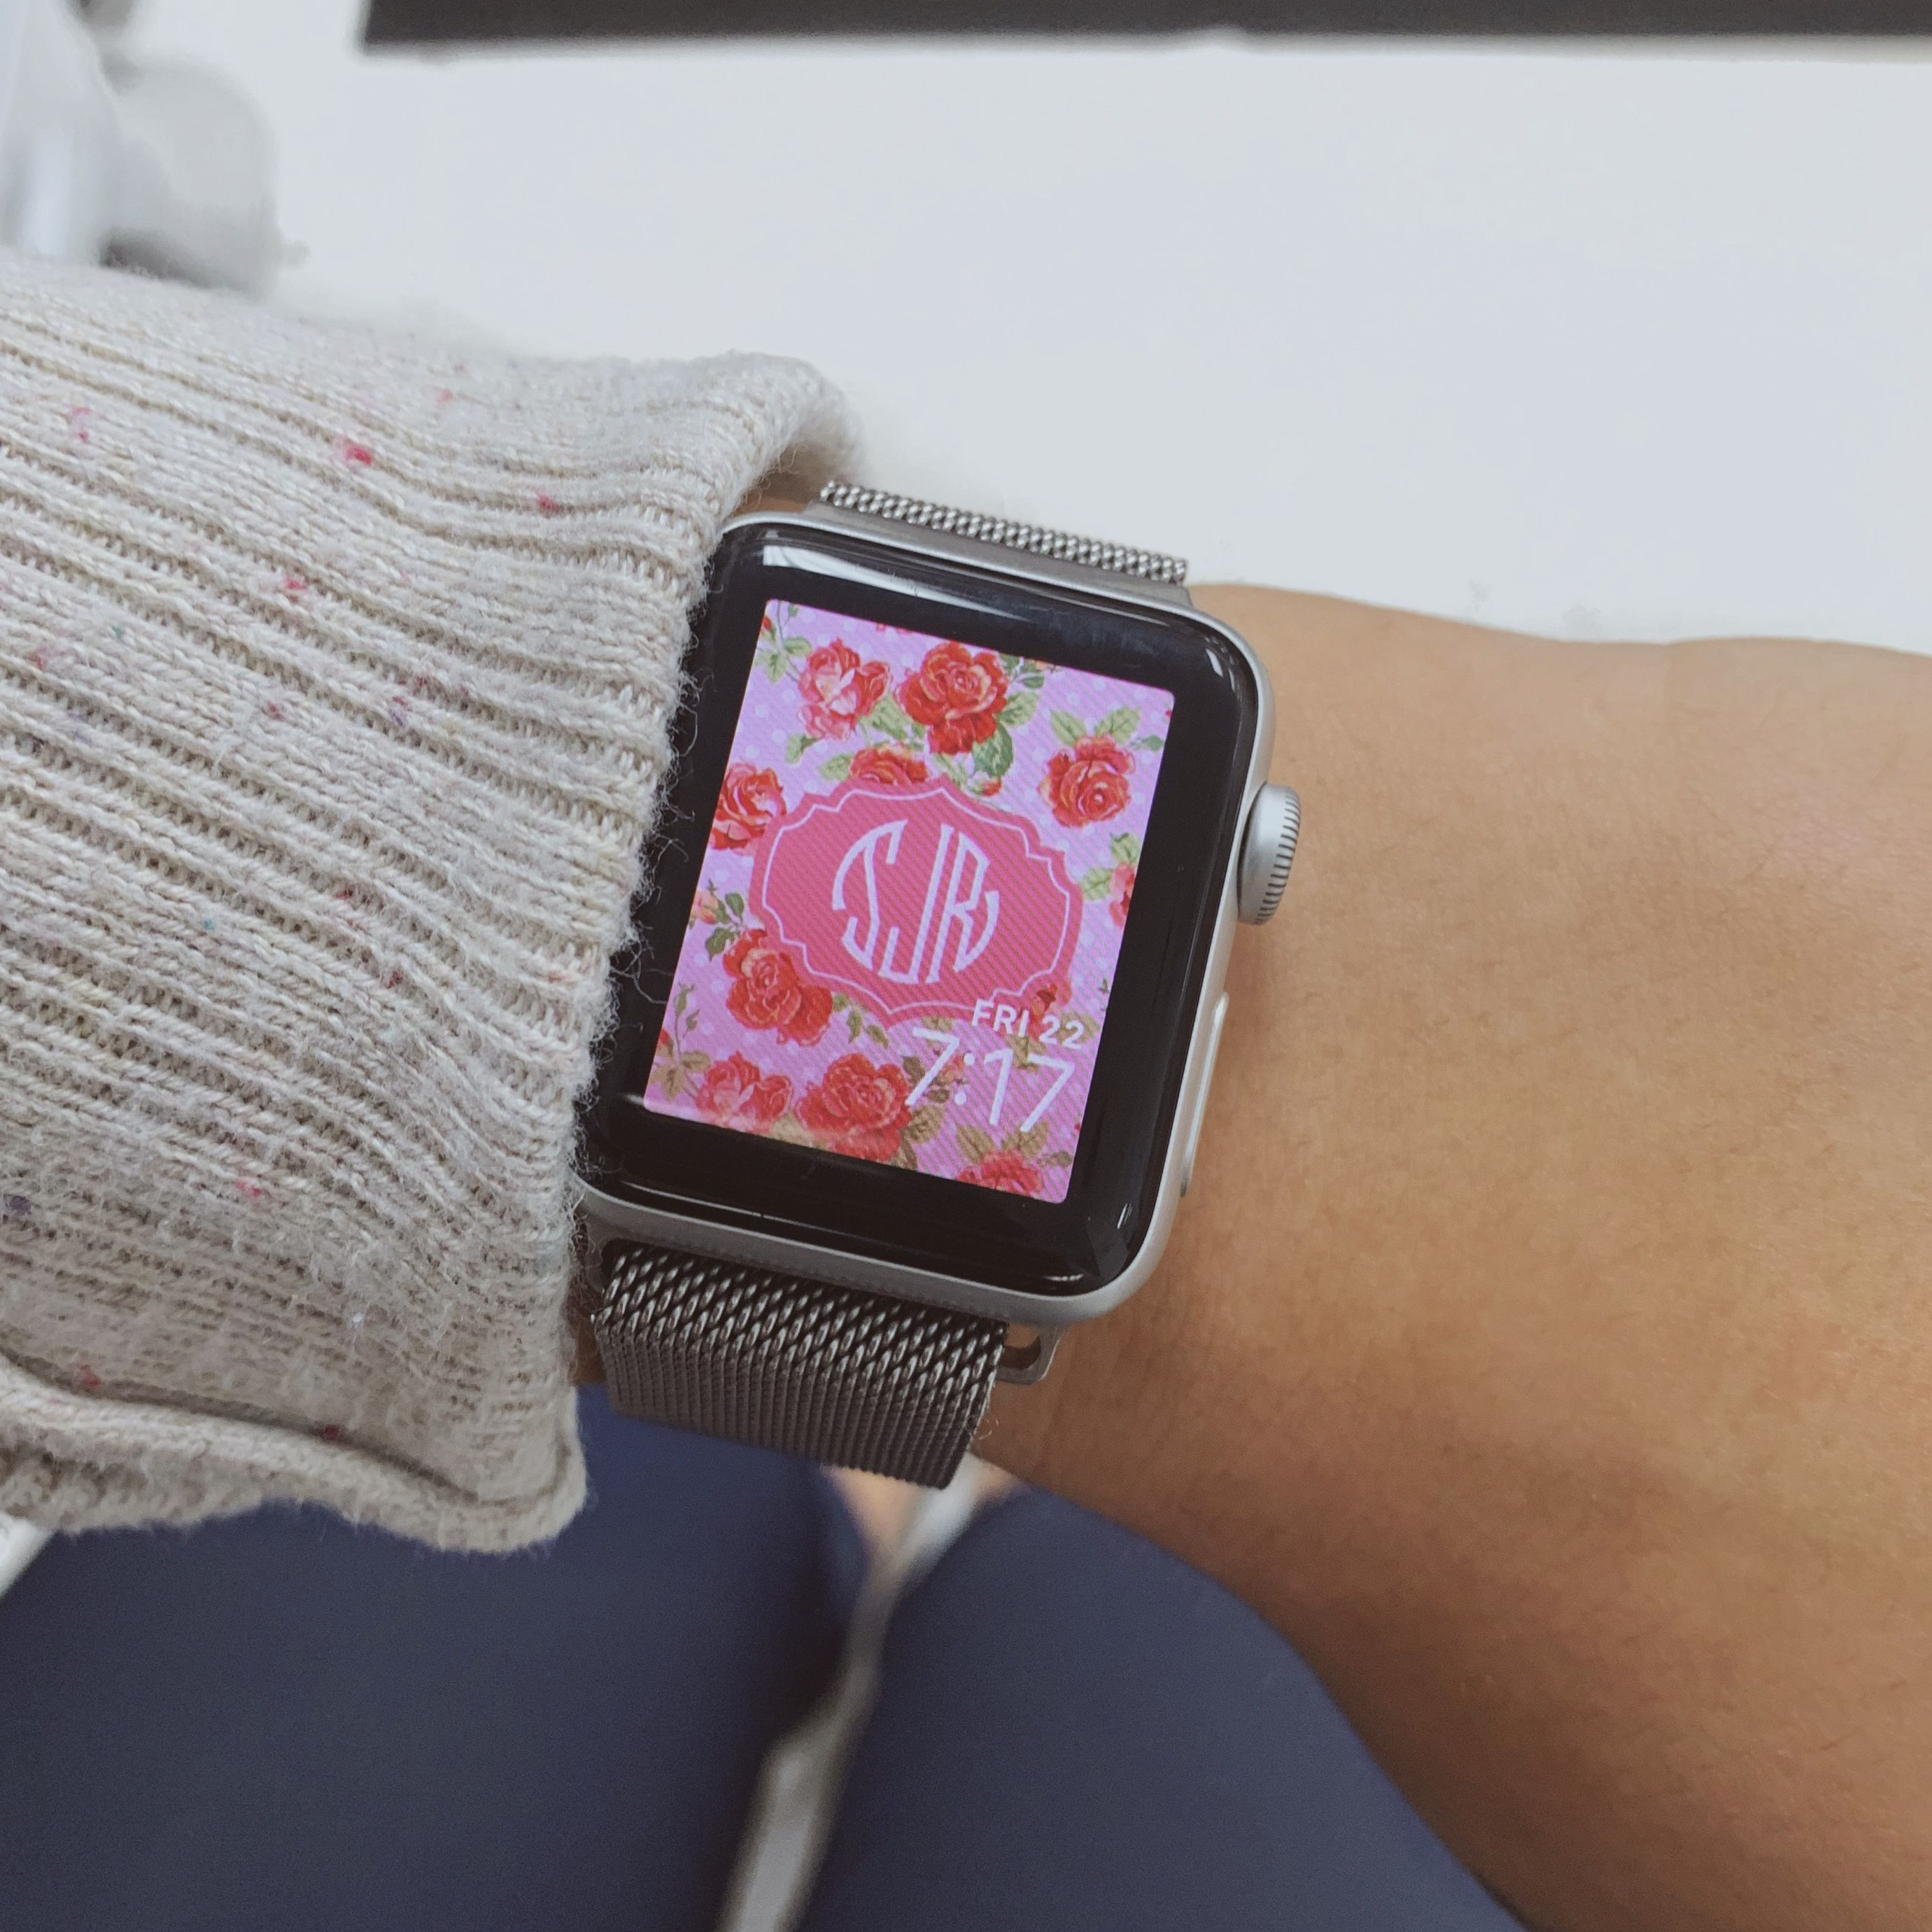 Monogrammed Apple Watch Face Apple Watch Faces Apple Watch Apple Watch 38mm